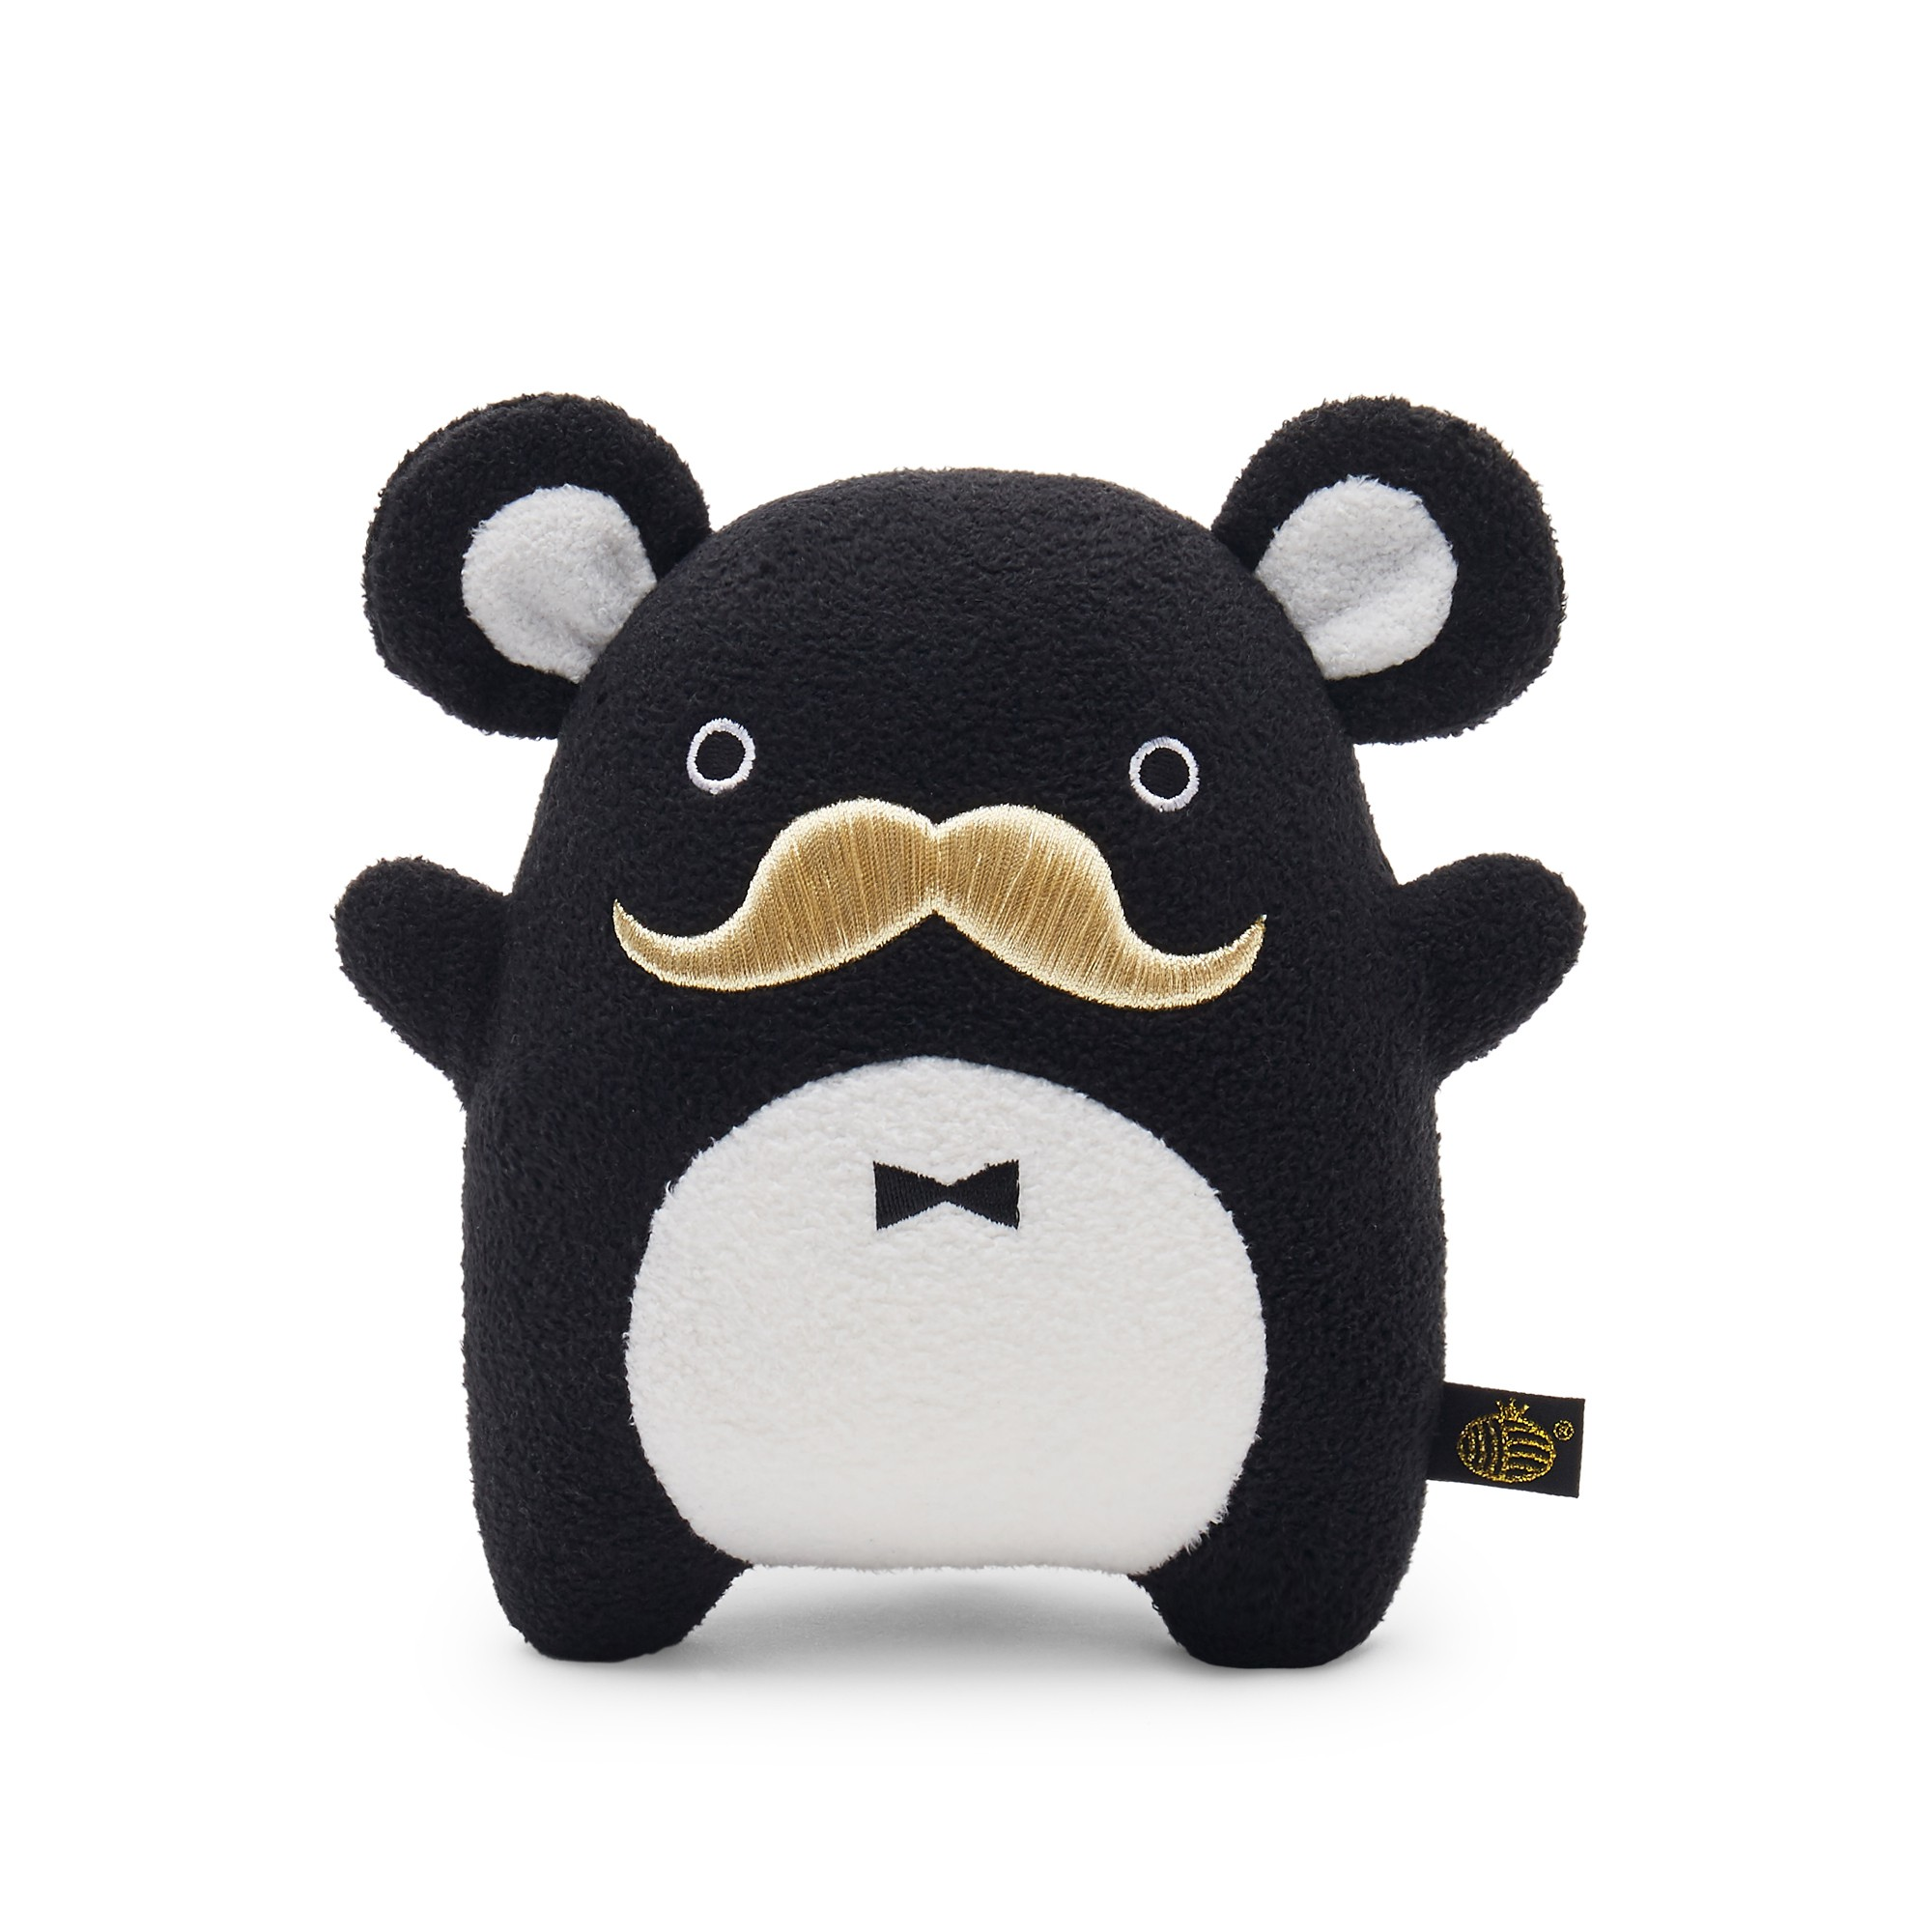 Ricepapa Plush Toy Black